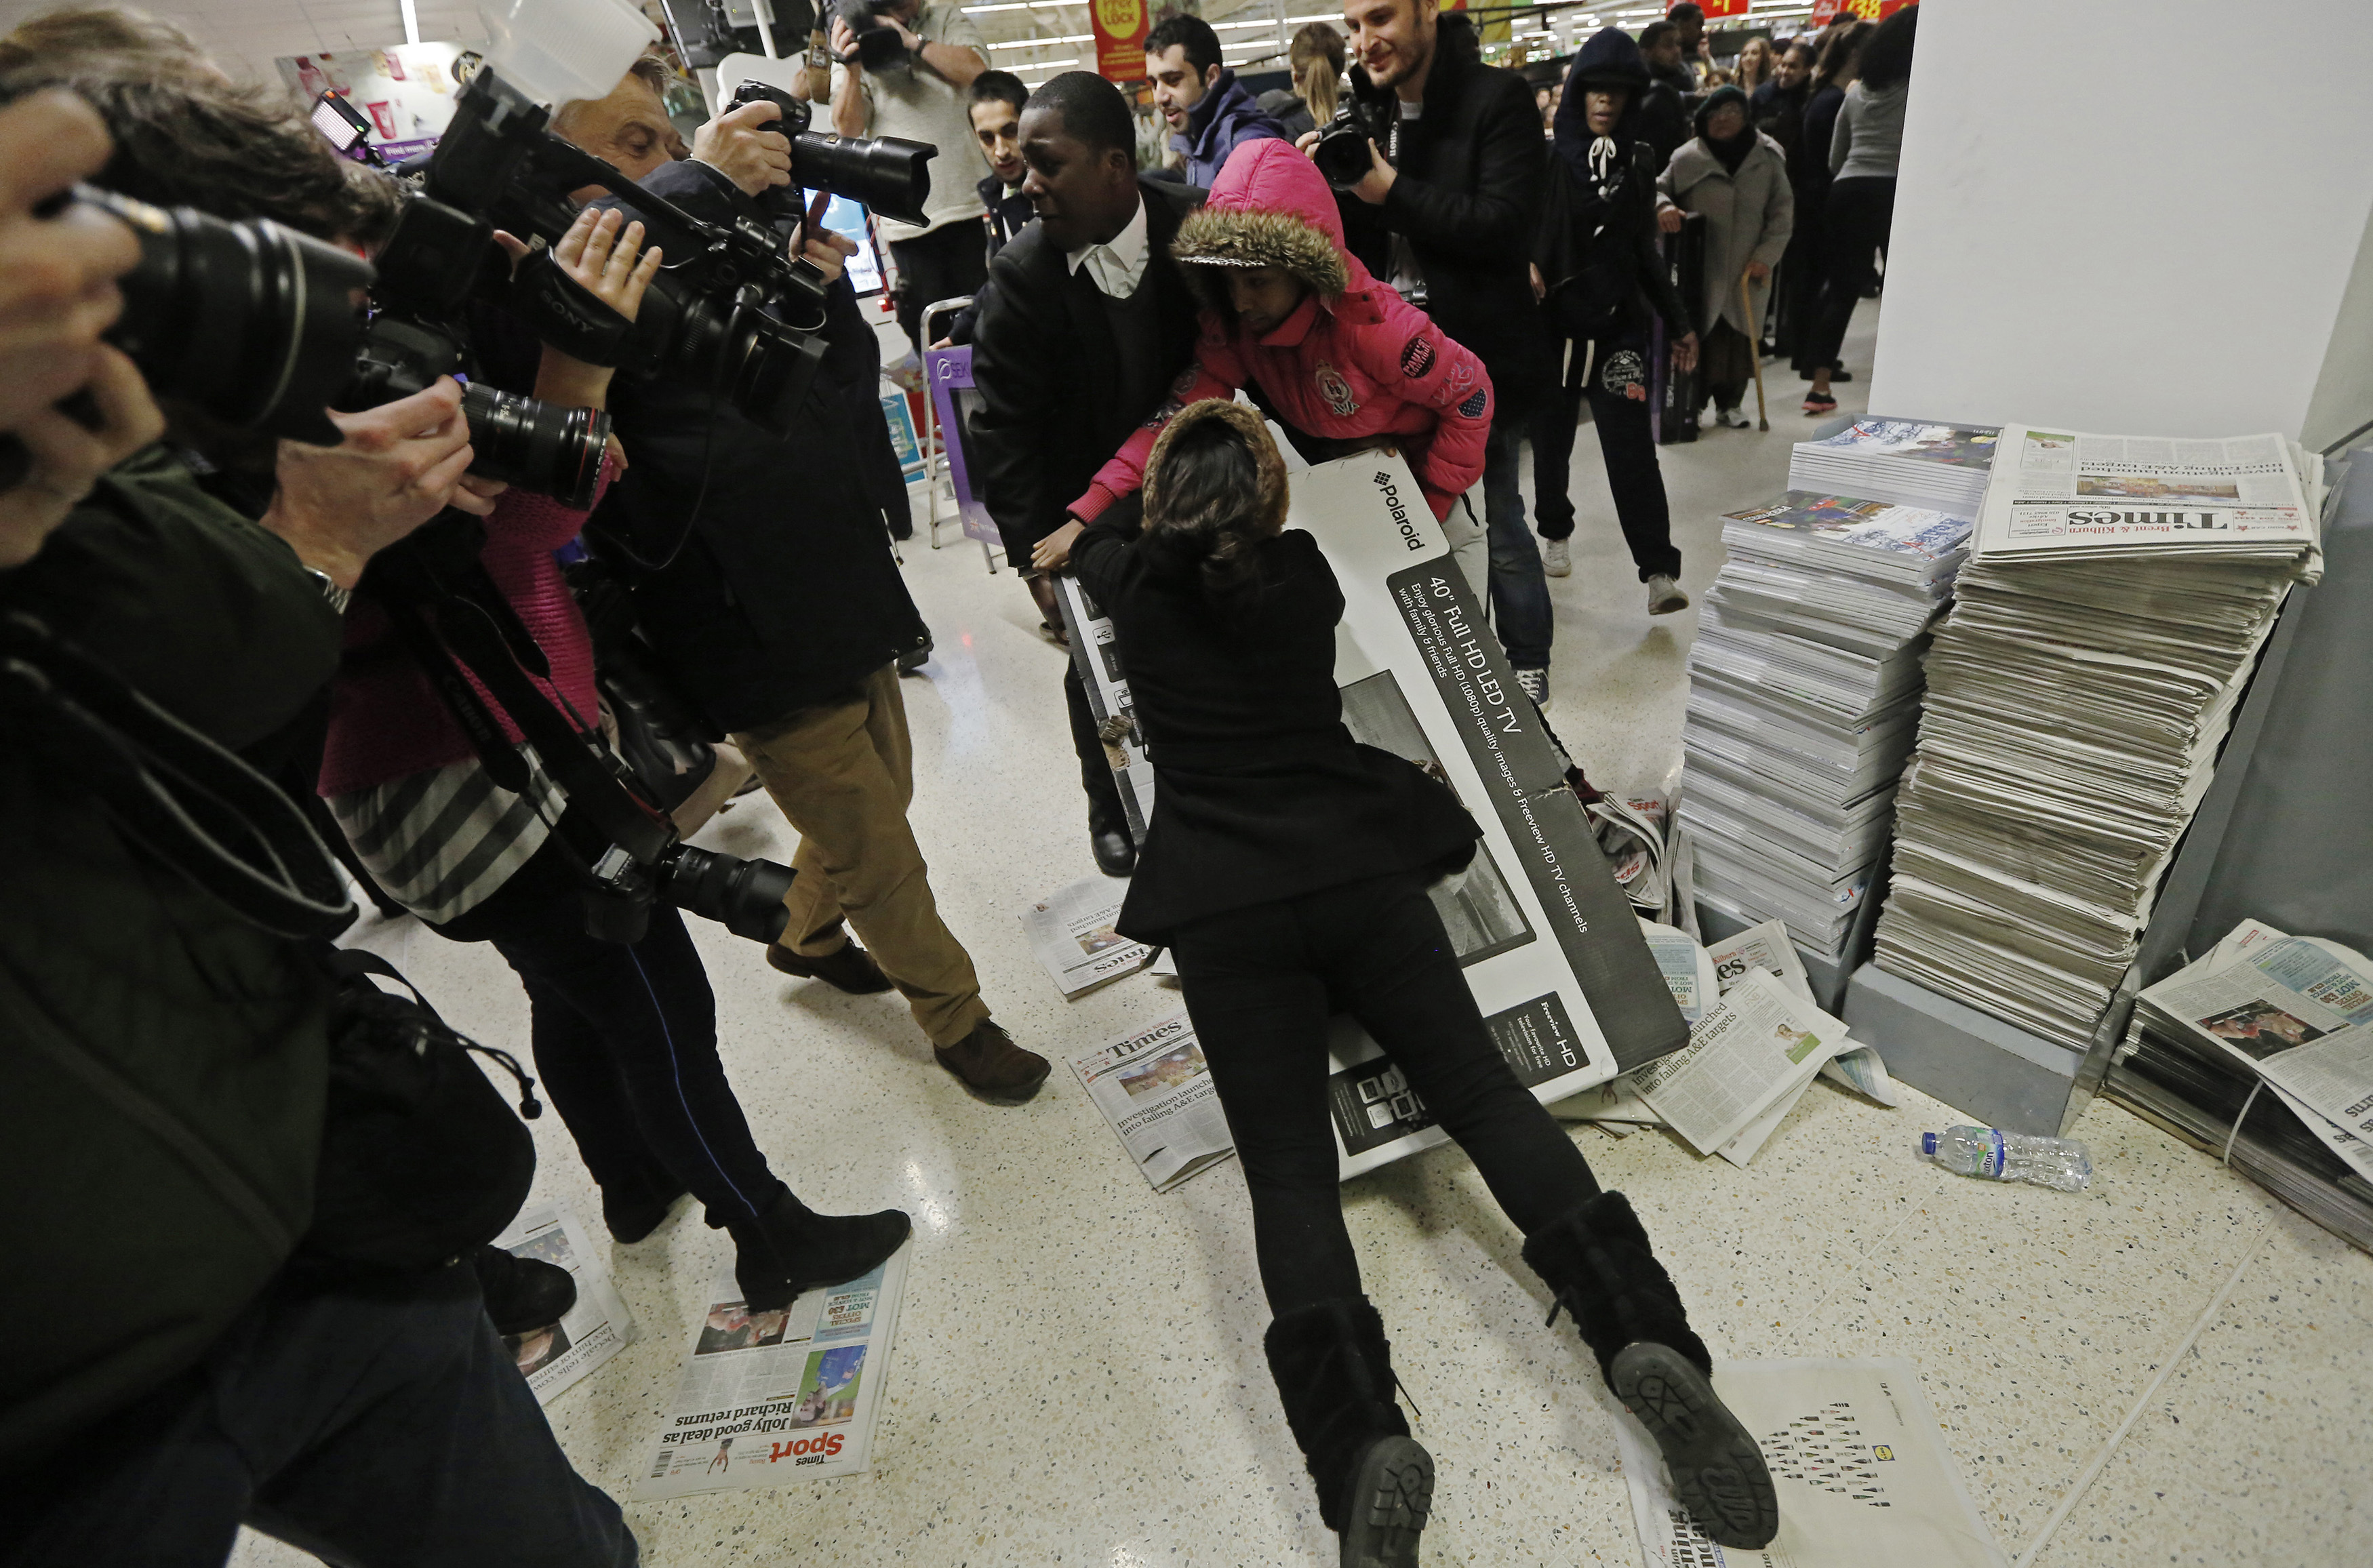 """Shoppers wrestle over a television as they compete to purchase retail items on """"Black Friday"""" at an Asda superstore in Wembley"""